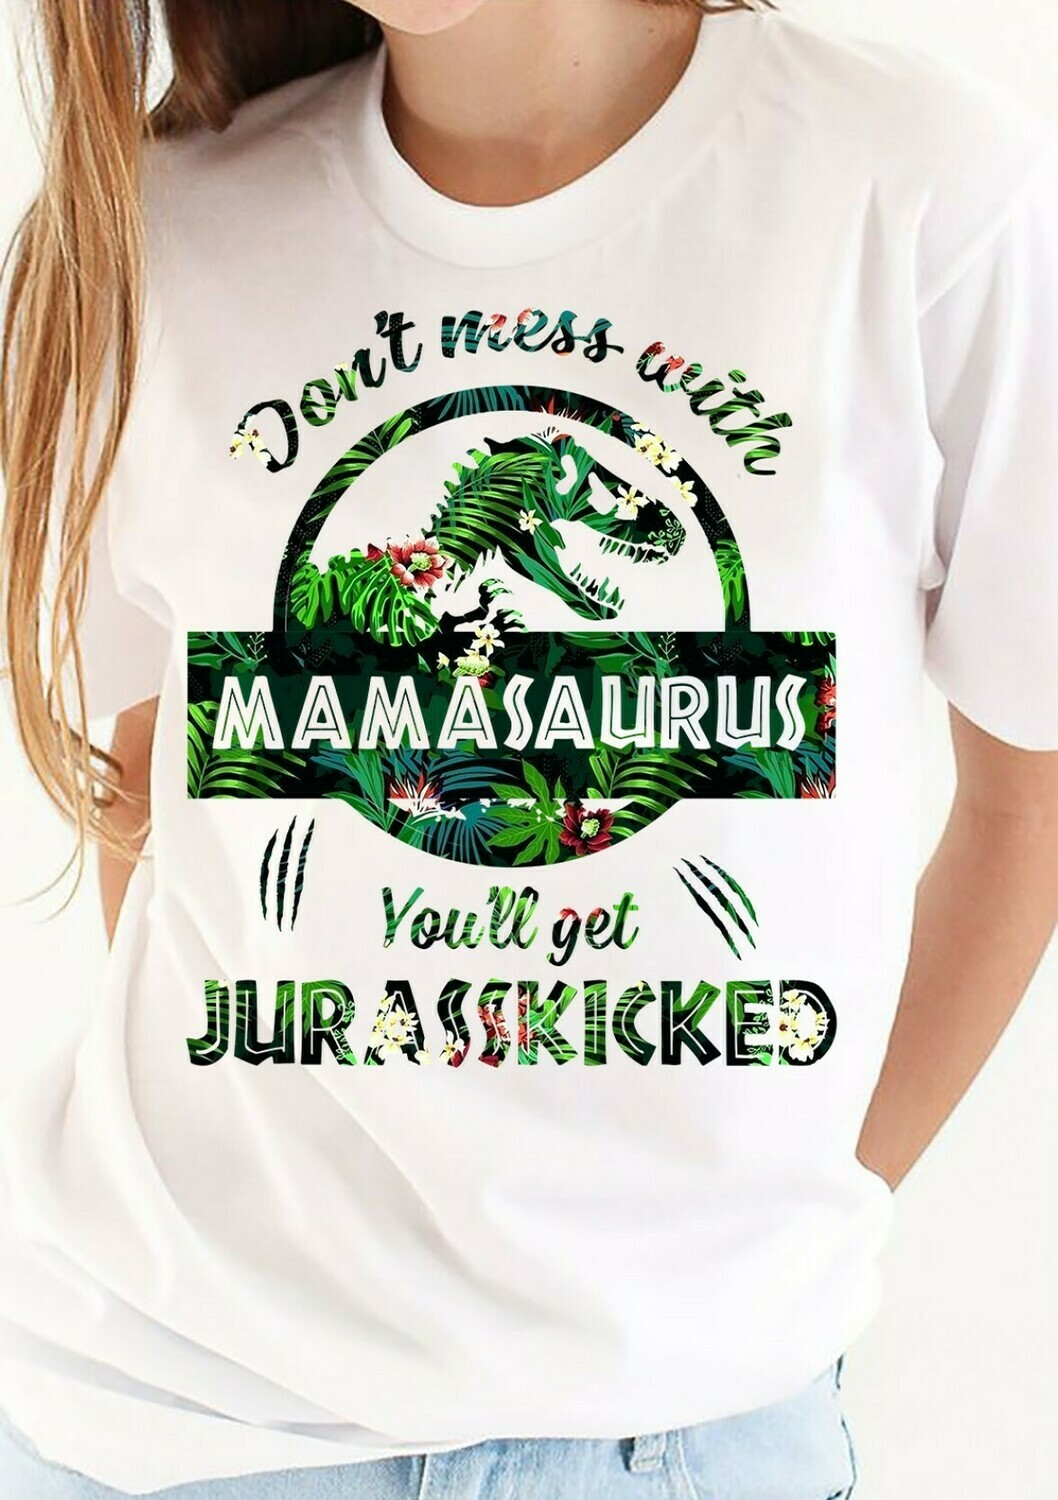 Don't mess with mamasaurus you'll get jurasskicked mother's day shirt T-Shirt Hoodie Sweatshirt Sweater Tee Kids Youth Gifts Jolly Family Gifts